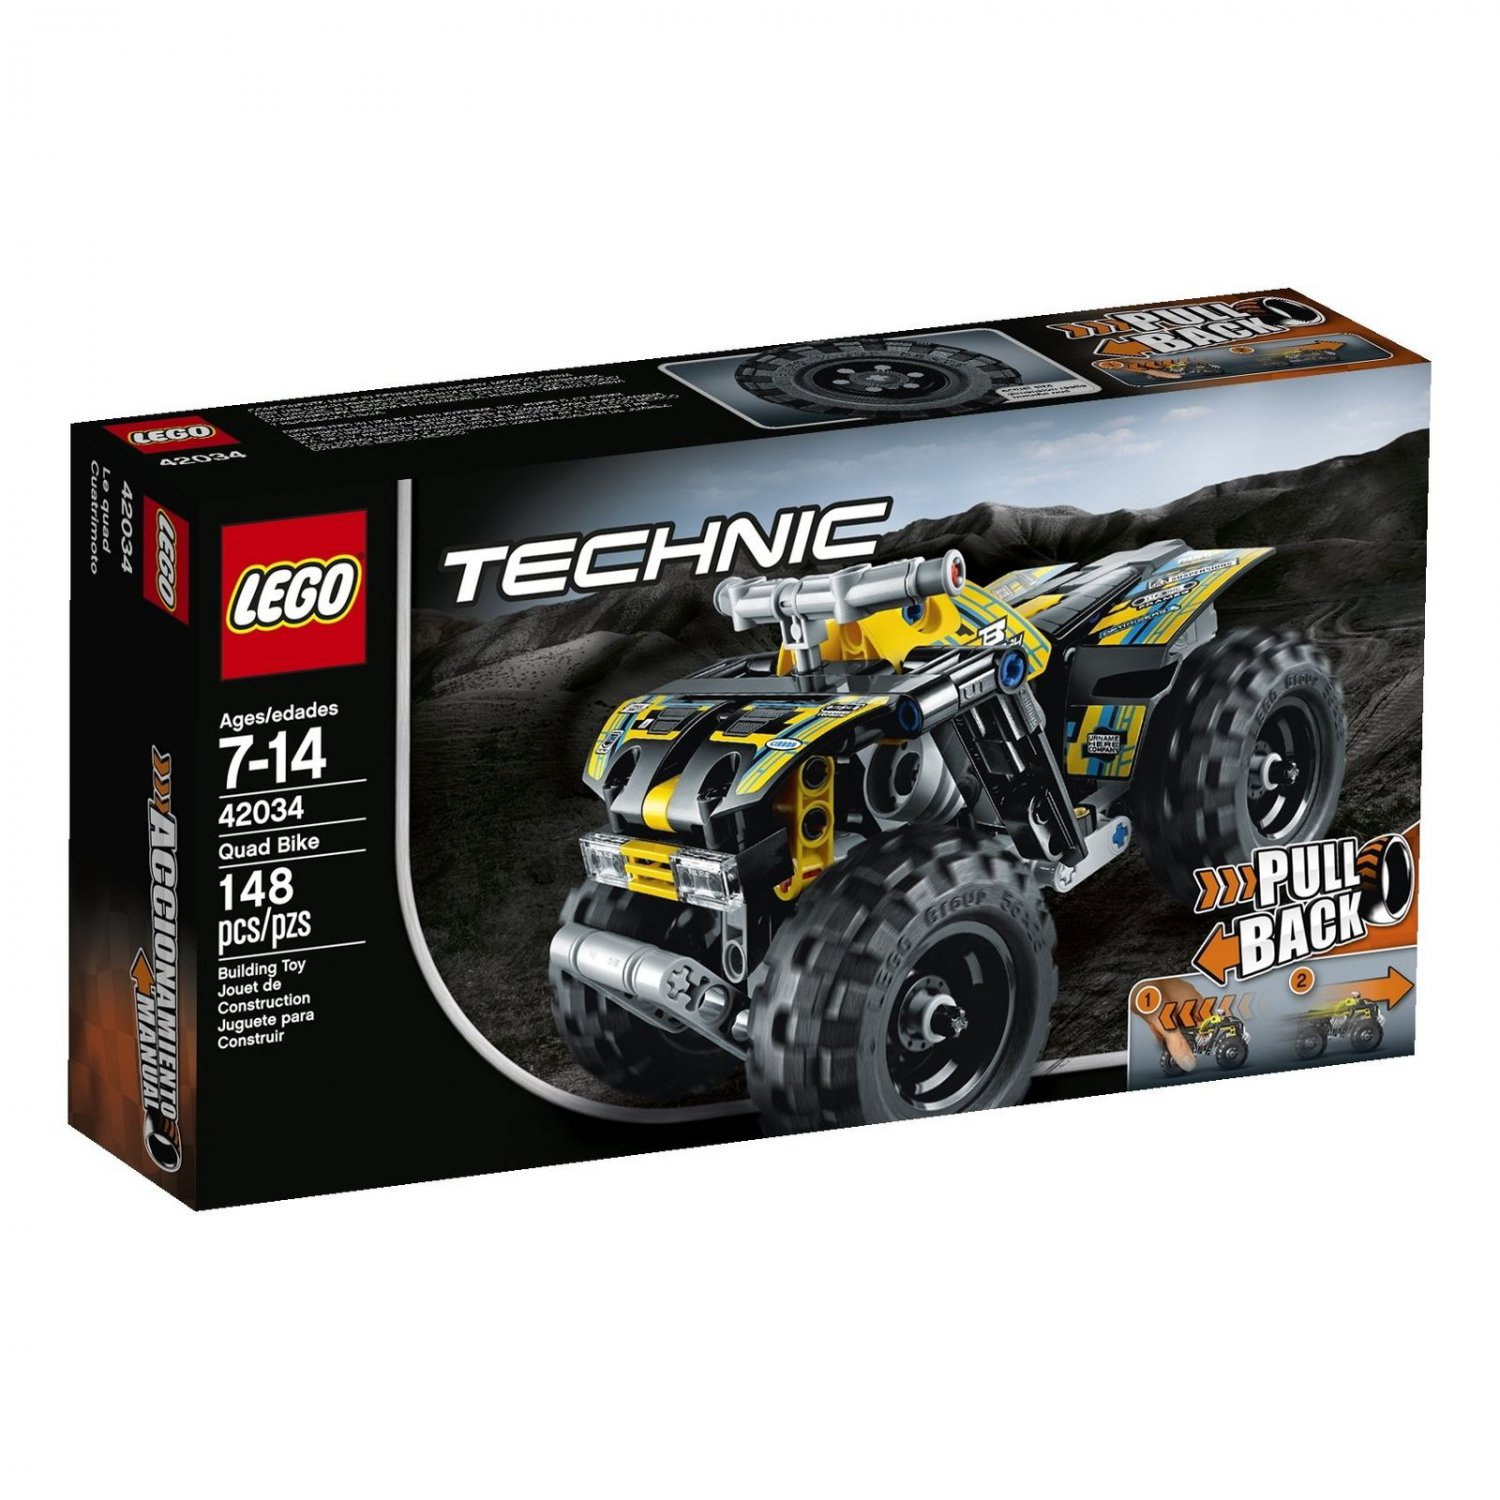 LEGO 42034 Technic Series Quad Bike